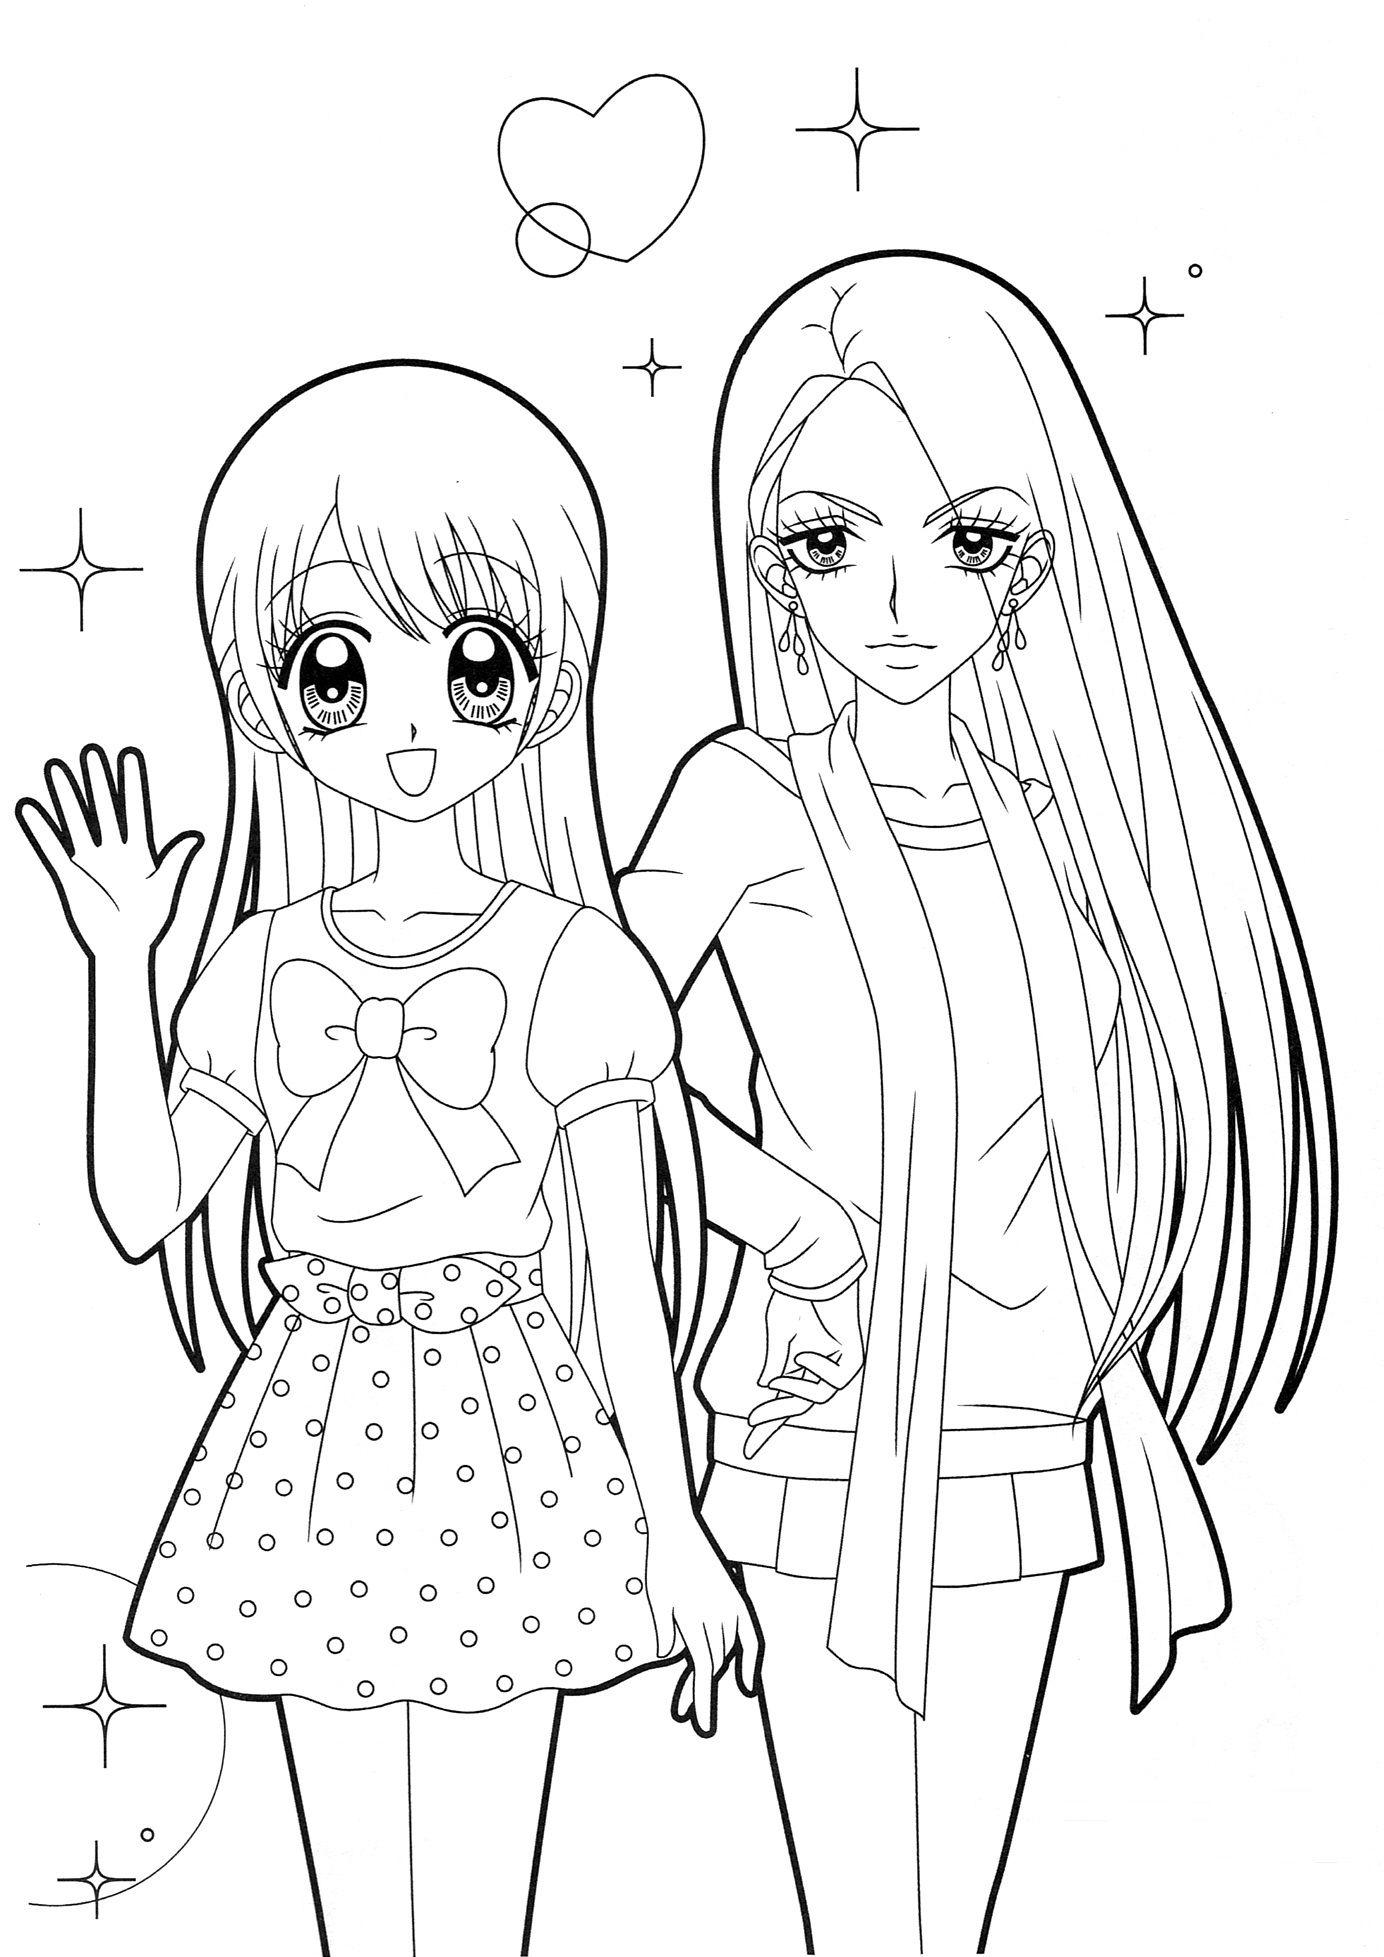 Two Girls Coloring Pages For Girls Cool Coloring Pages Cartoon Coloring Pages [ 1957 x 1384 Pixel ]